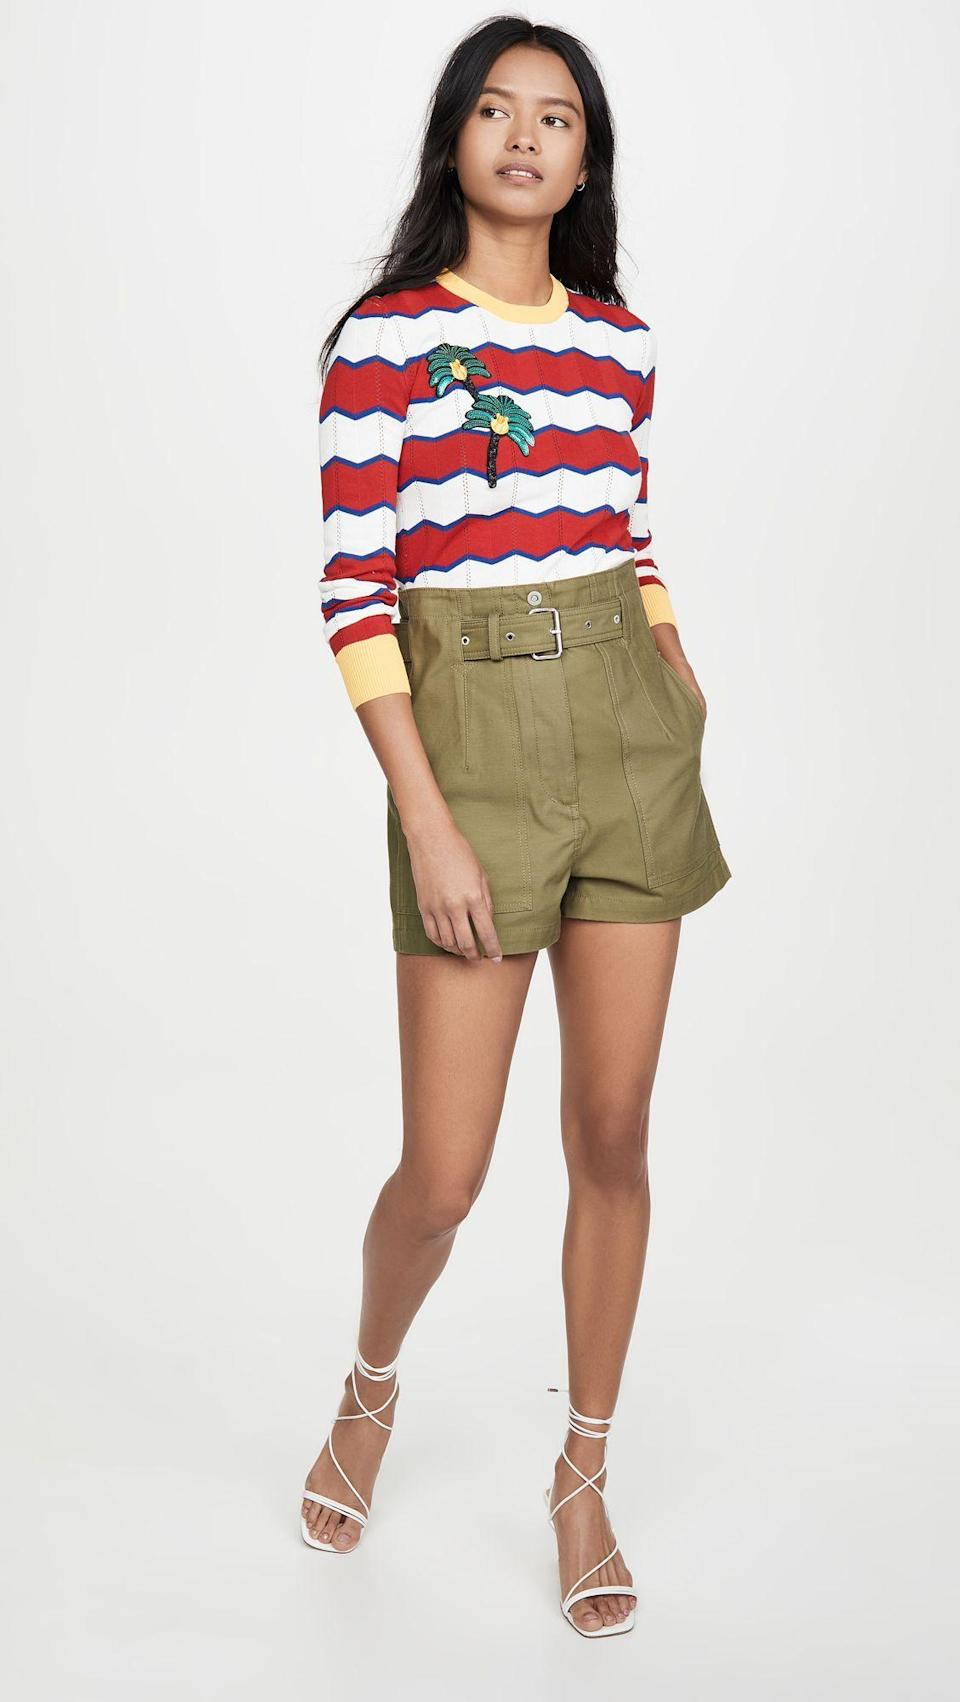 """<p><strong>Stella Jean</strong></p><p>shopbop.com</p><p><strong>$192.00</strong></p><p><a href=""""https://go.redirectingat.com?id=74968X1596630&url=https%3A%2F%2Fwww.shopbop.com%2Fstriped-sweater-stella-jean%2Fvp%2Fv%3D1%2F1549211054.htm&sref=https%3A%2F%2Fwww.cosmopolitan.com%2Fstyle-beauty%2Ffashion%2Fg32950282%2Fcute-rainy-day-outfit-ideas%2F"""" rel=""""nofollow noopener"""" target=""""_blank"""" data-ylk=""""slk:Shop Now"""" class=""""link rapid-noclick-resp"""">Shop Now</a></p><p>A thin knit sweater with bold stripes adds a pop of color to some army-green high-waisted shorts. Opt for knee-high rain boots and a raincoat if it's really pouring outside. </p>"""